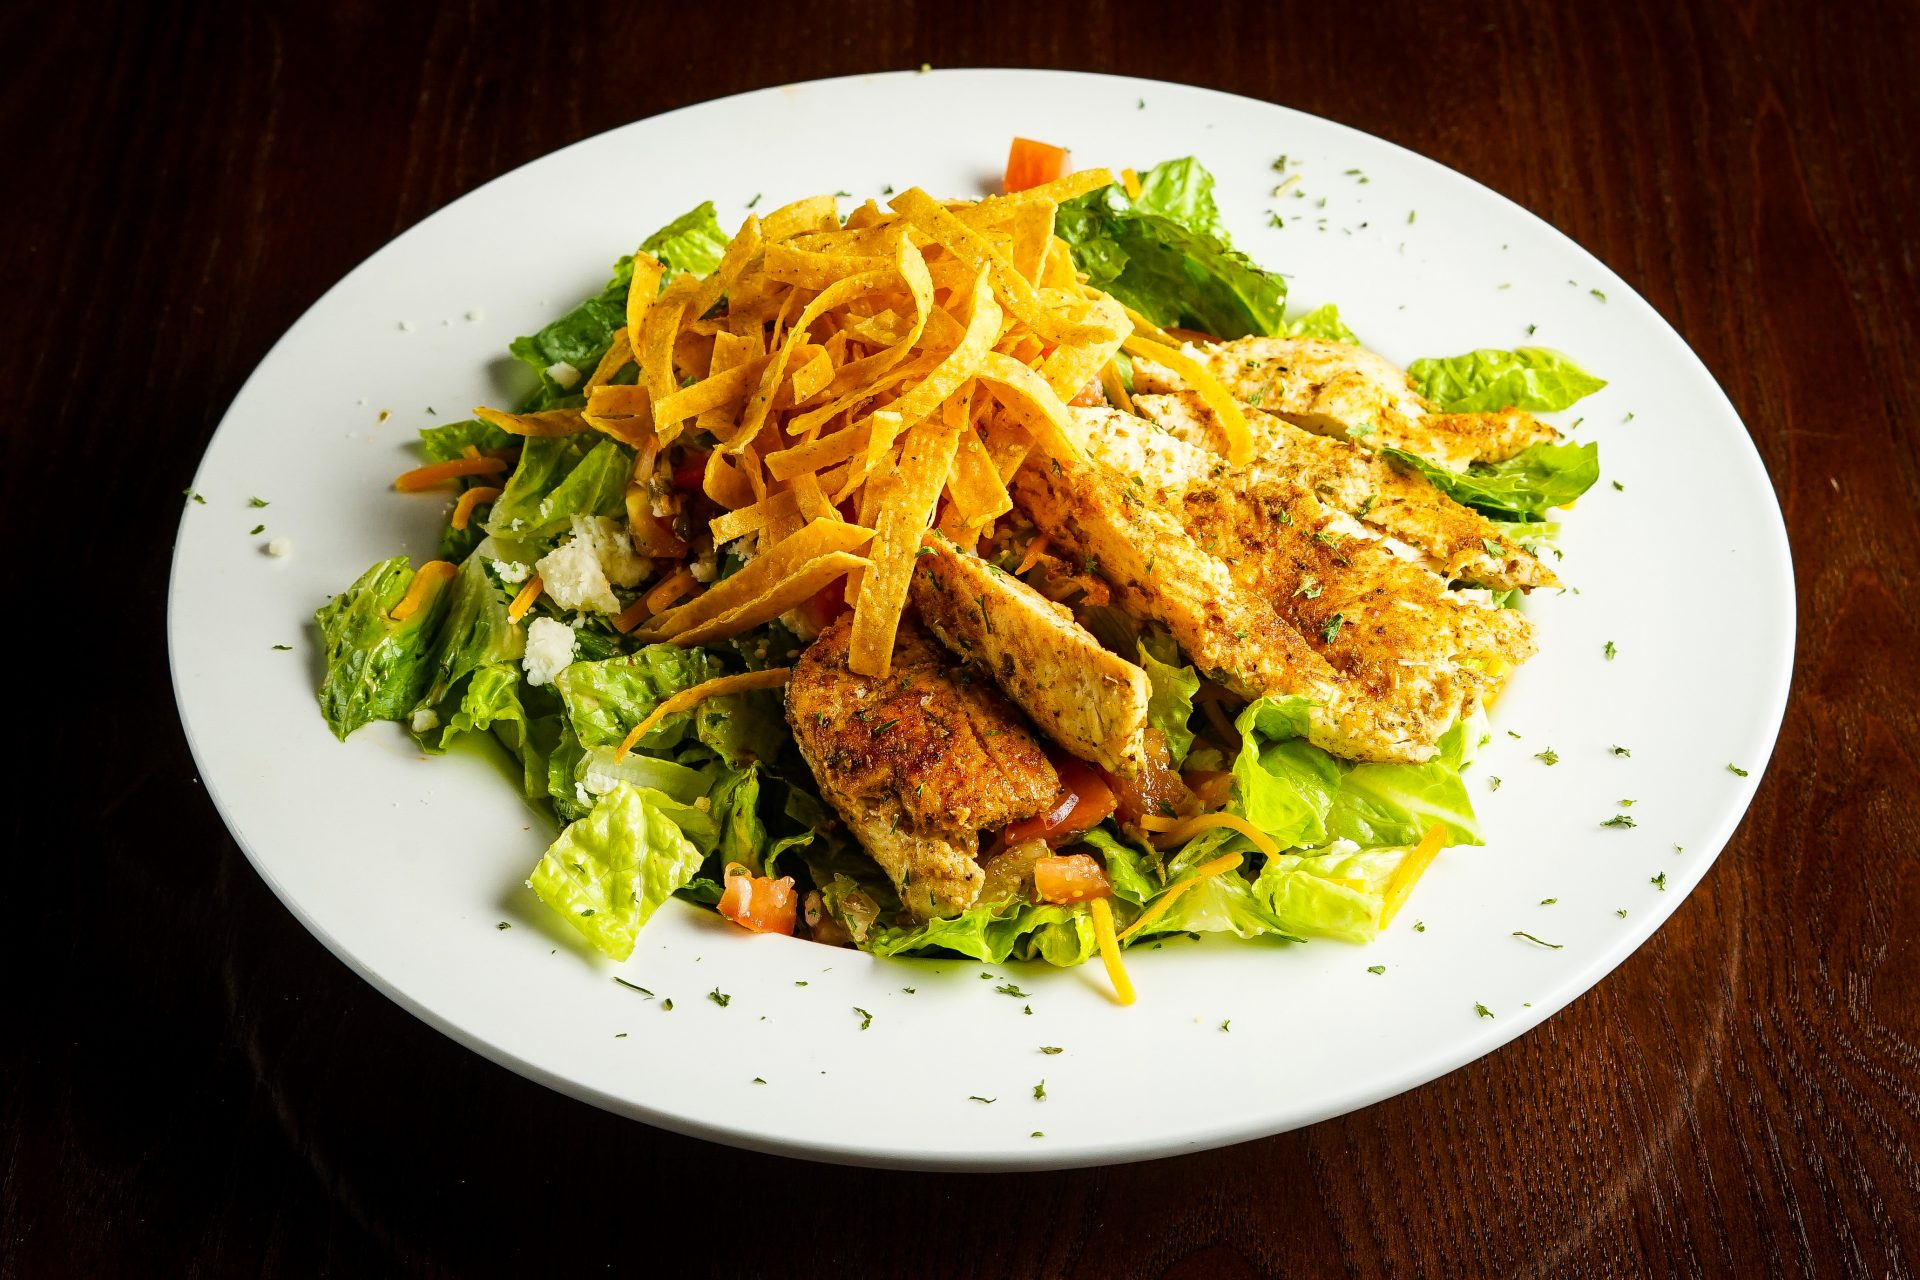 Image of New Mexico Salad - Blackened Chicken, Pico de Gallo, Queso Fresco, Cheddar Cheese, Corn Tortilla Strips, Romaine Lettuce, Chipotle Ranch Dressing